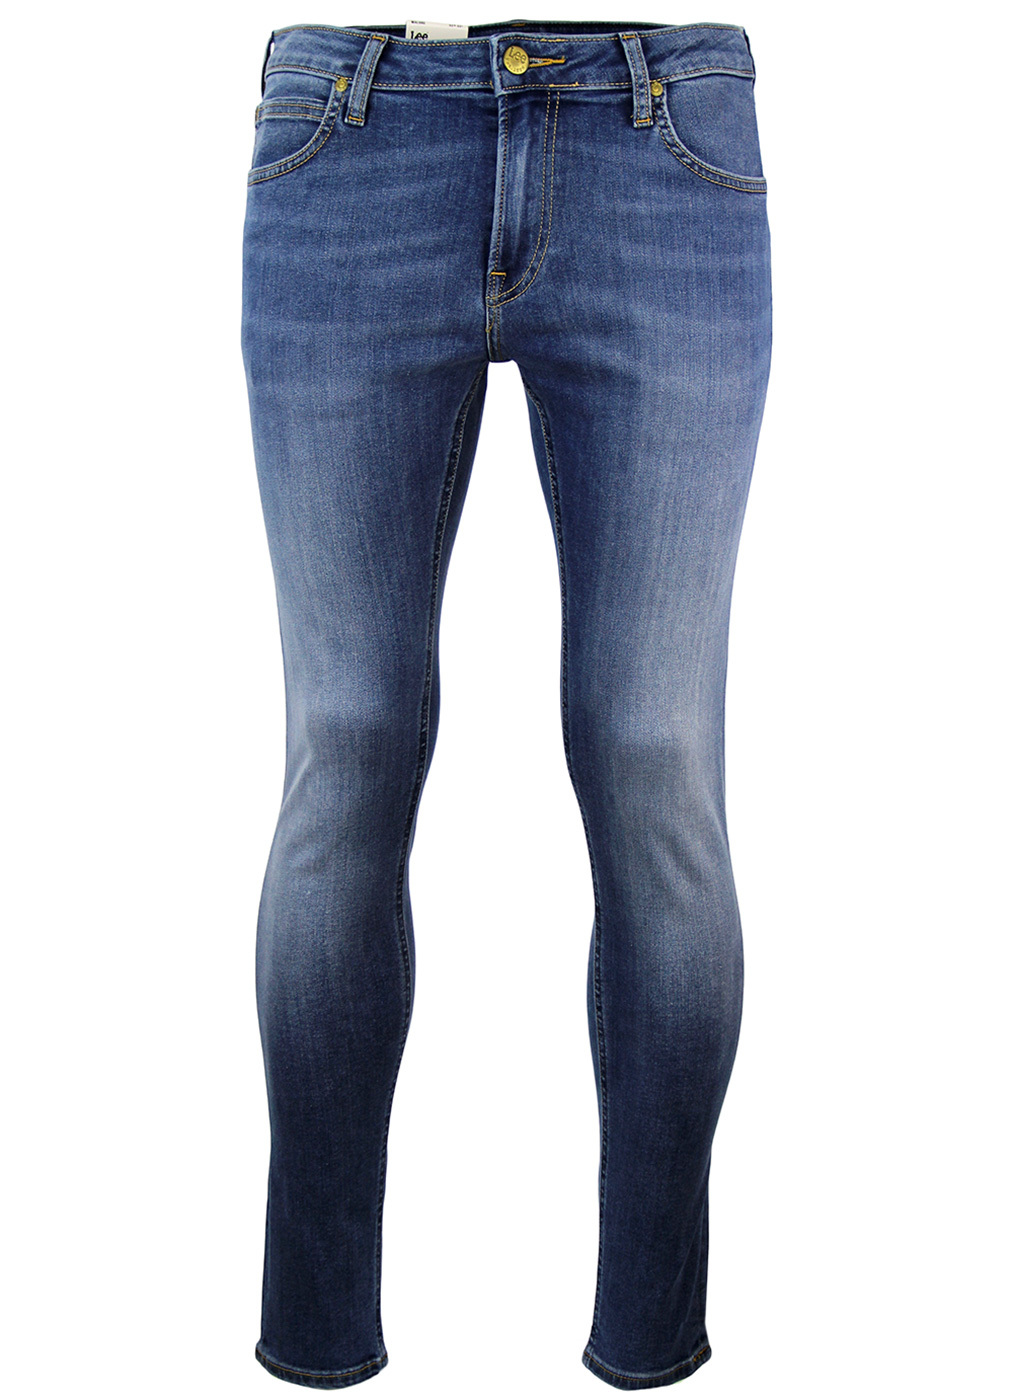 Malone LEE Retro Common Blue Skinny Denim Jeans